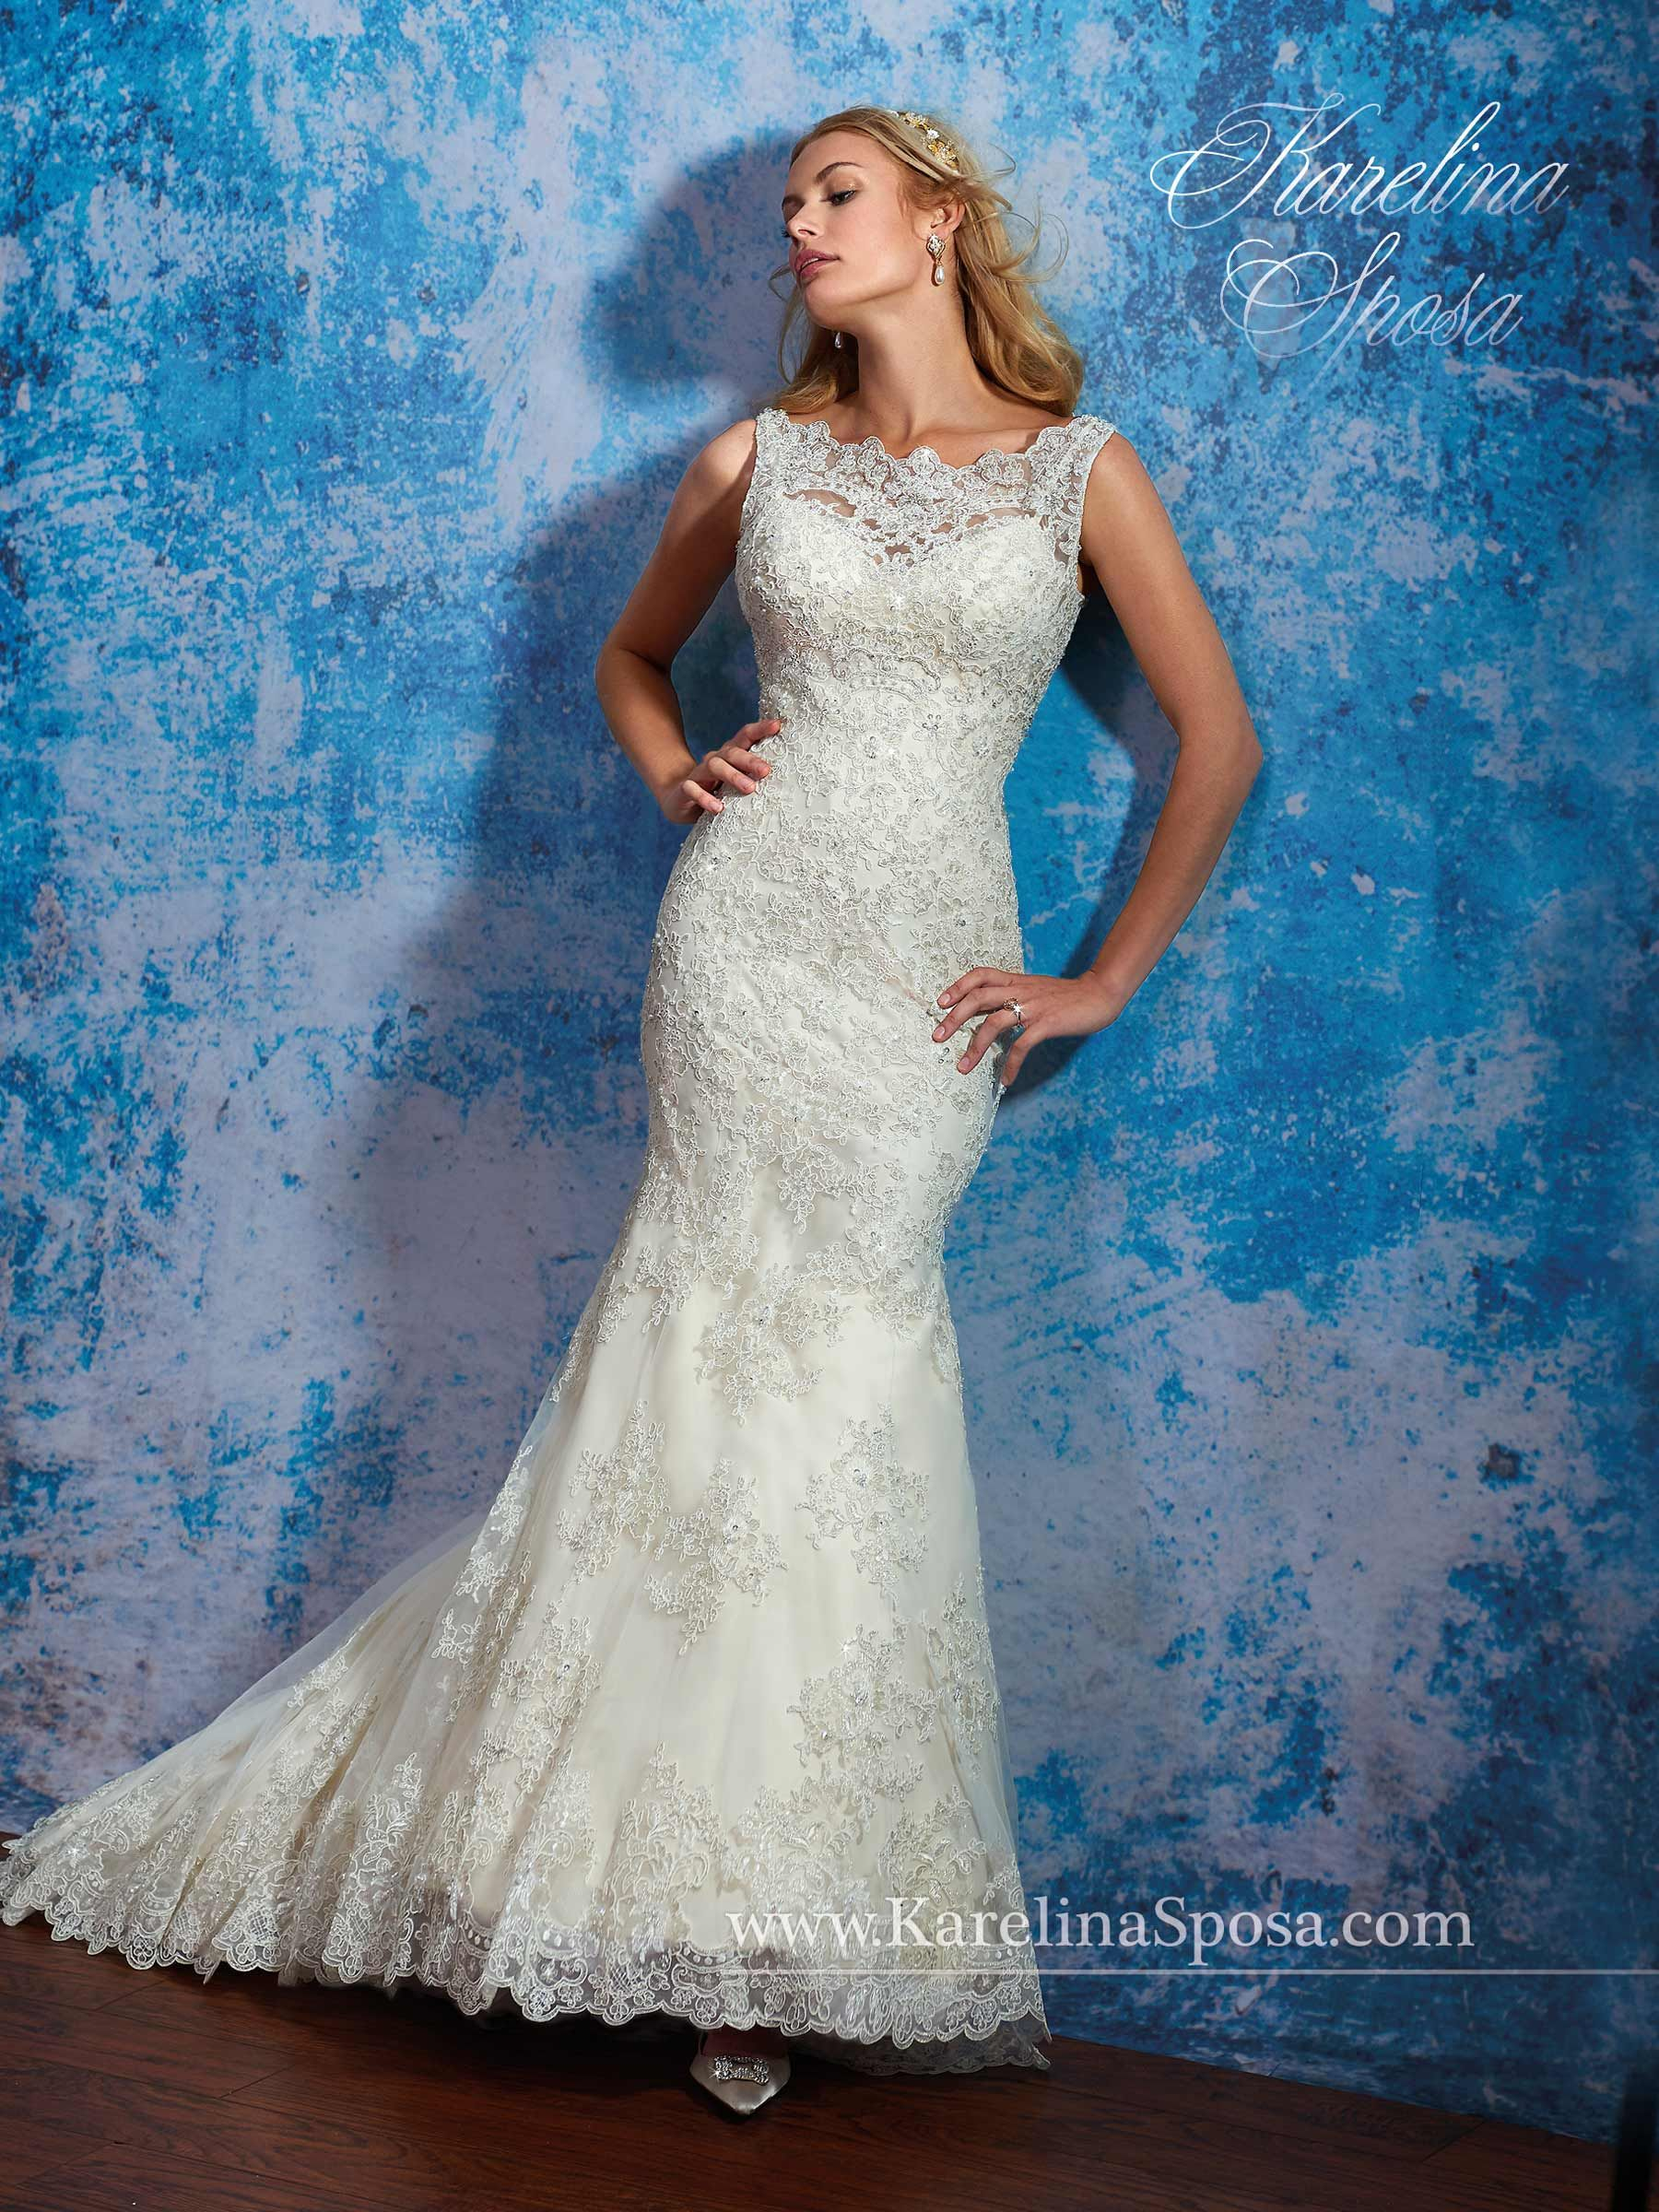 Karelina Sposa STYLE: S16-C8083 Description: Fit and flare bridal ...